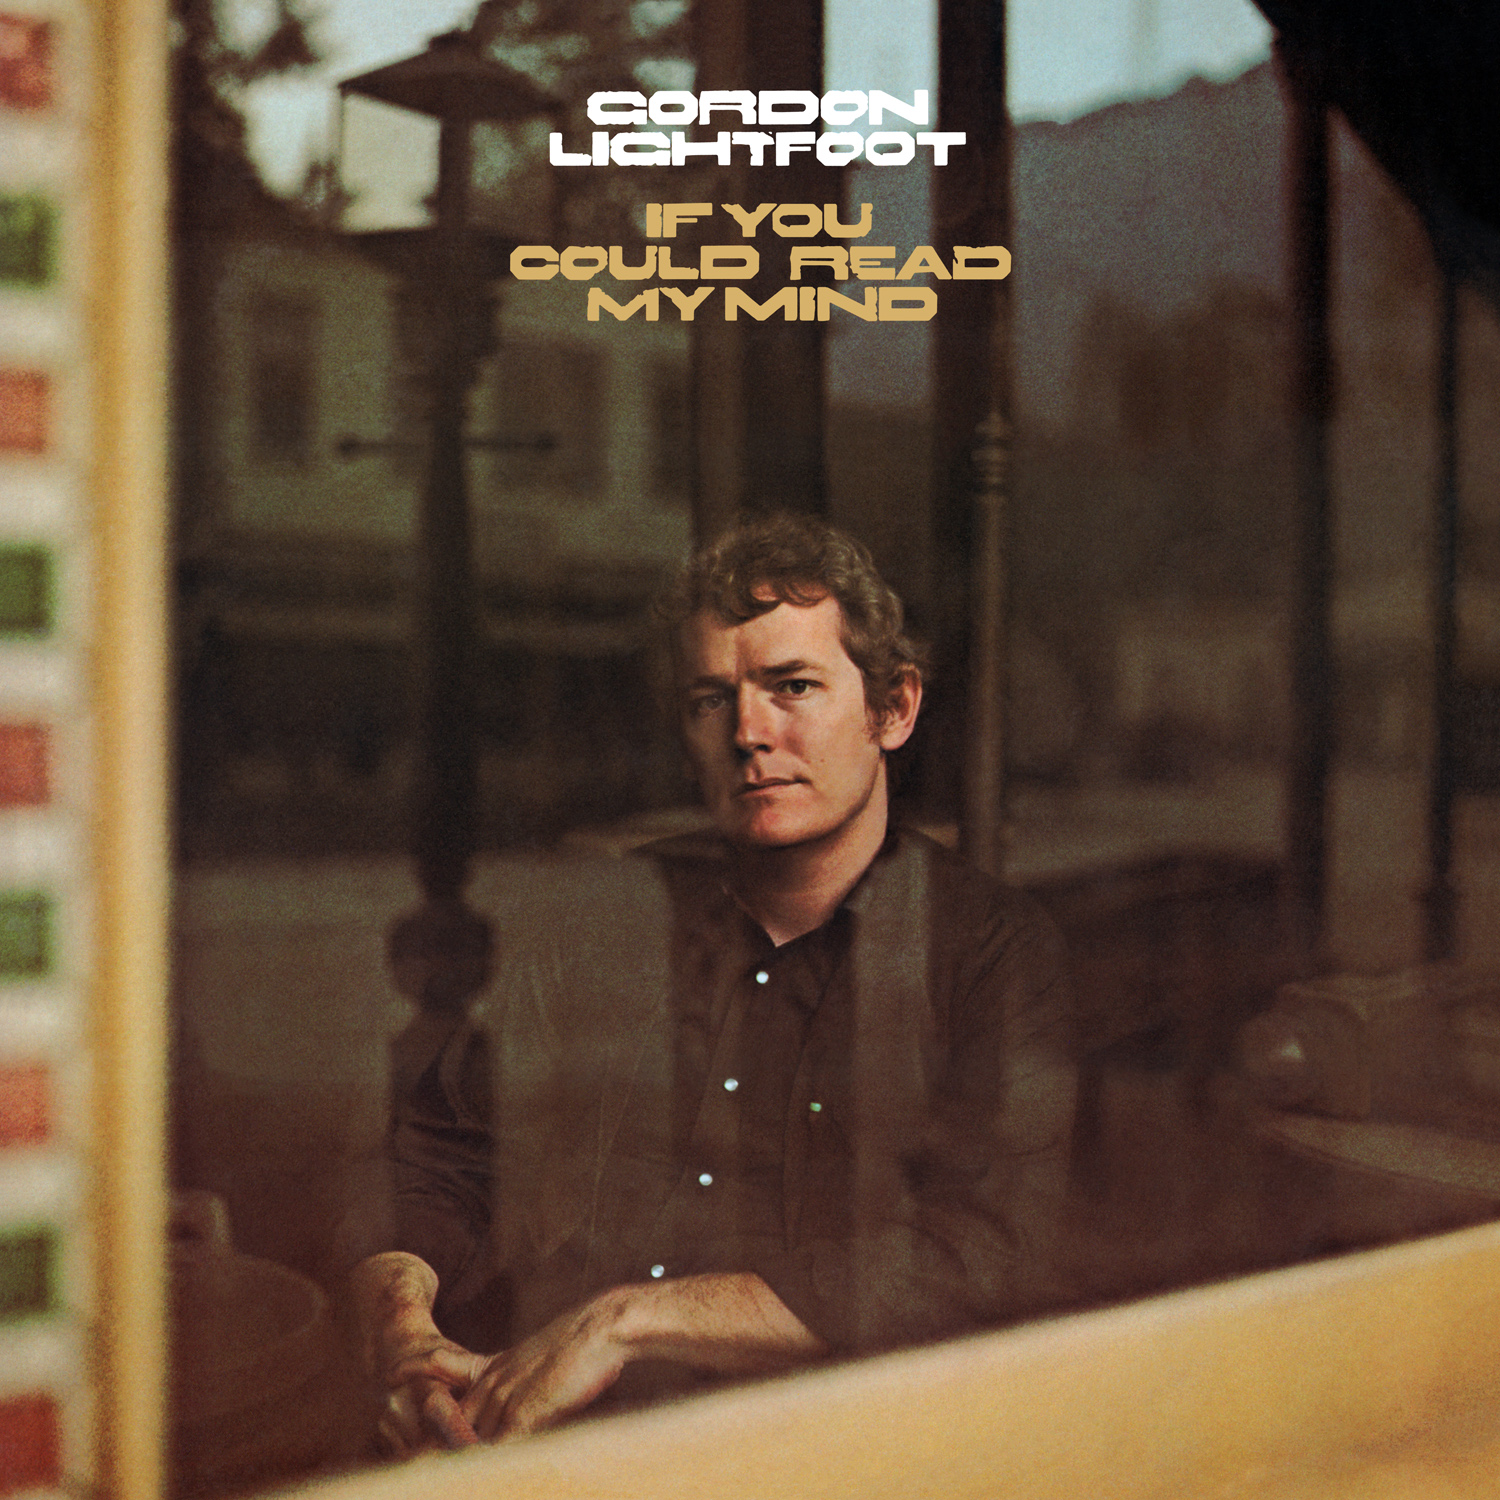 Gordon Lightfoot - If You Could Read My Mind (180 Gram Audiophile Vinyl/Ltd. Anniversary Edition)